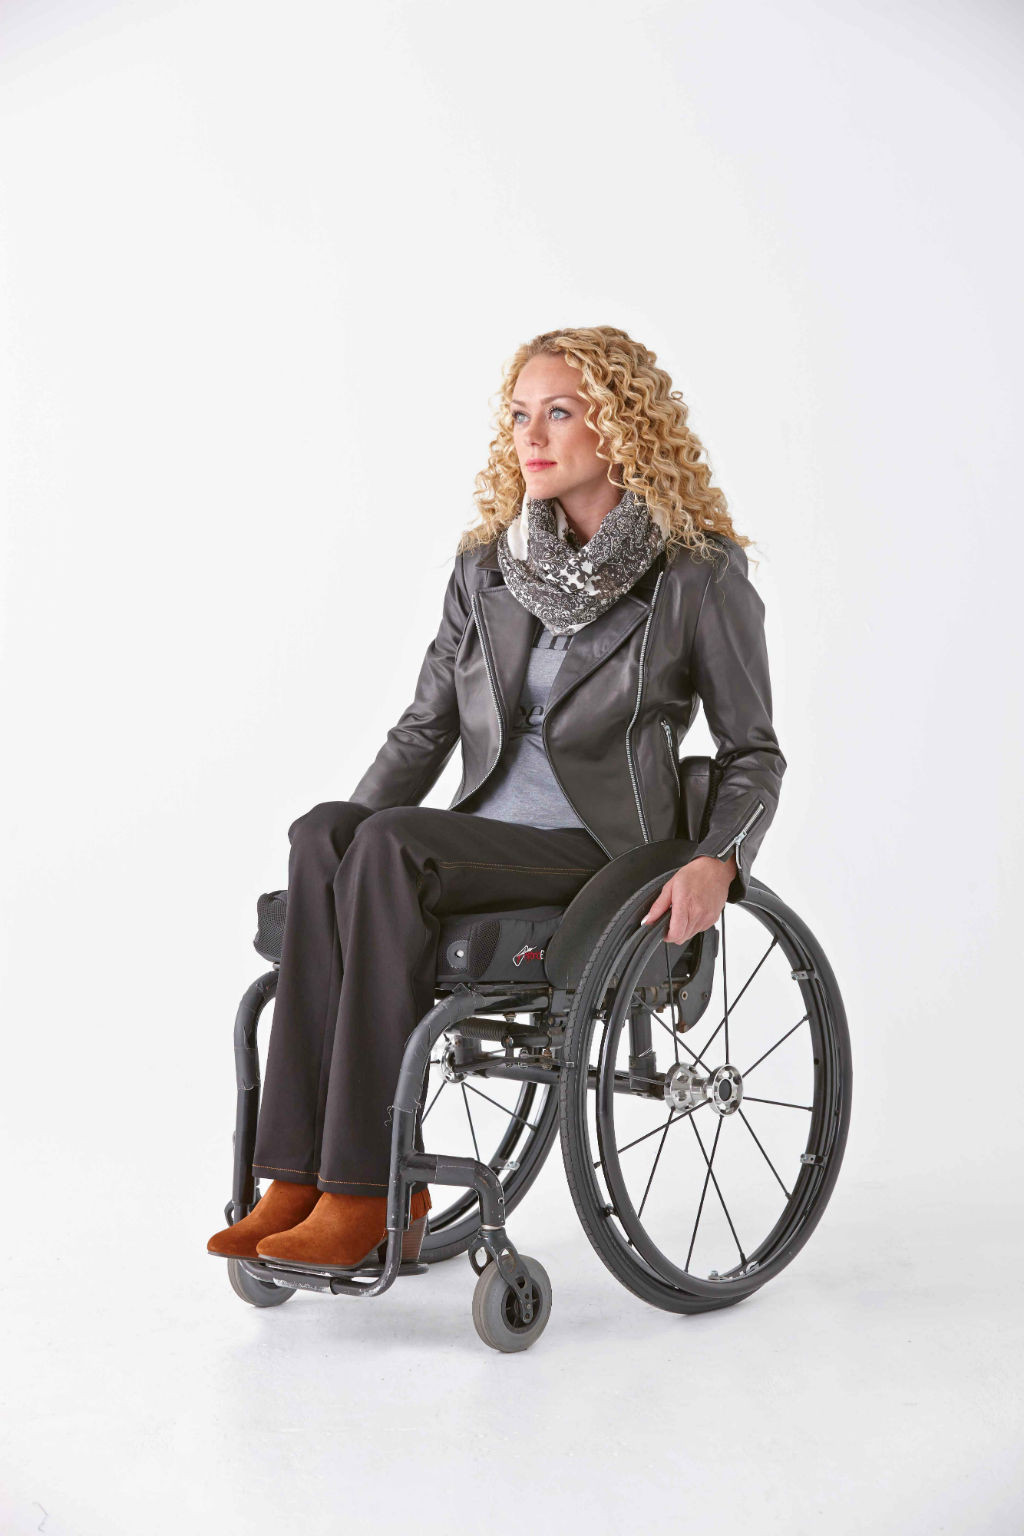 Designer creates accessible fashion for wheelchair users